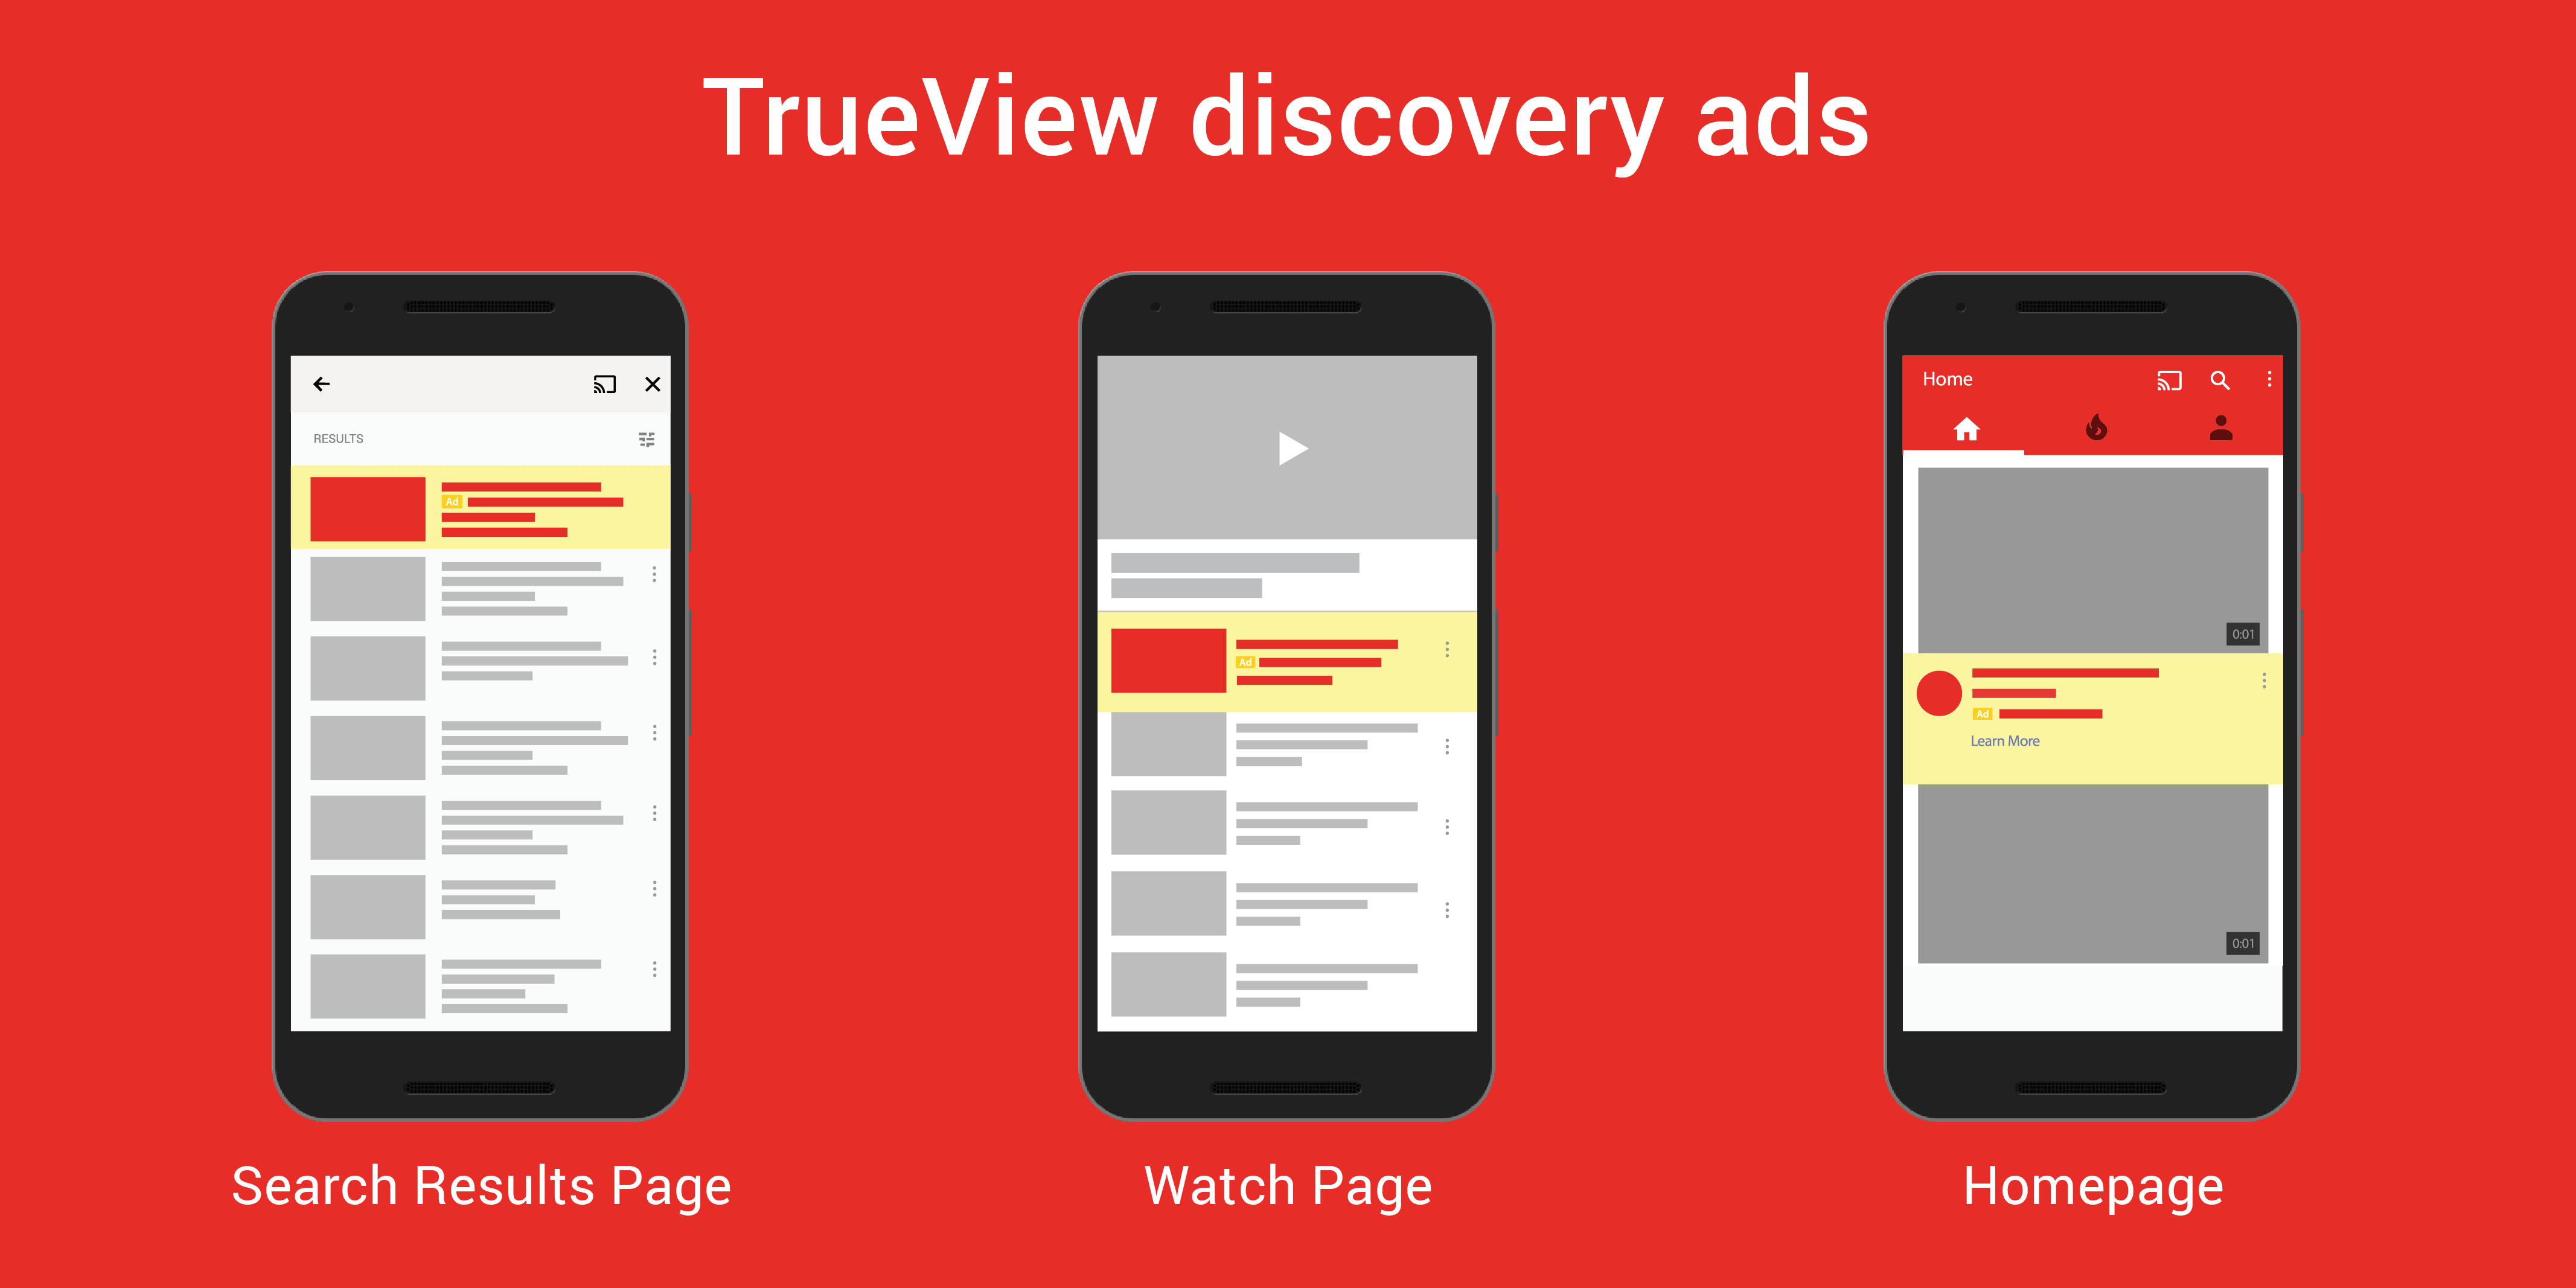 YouTube True View Discovery ads